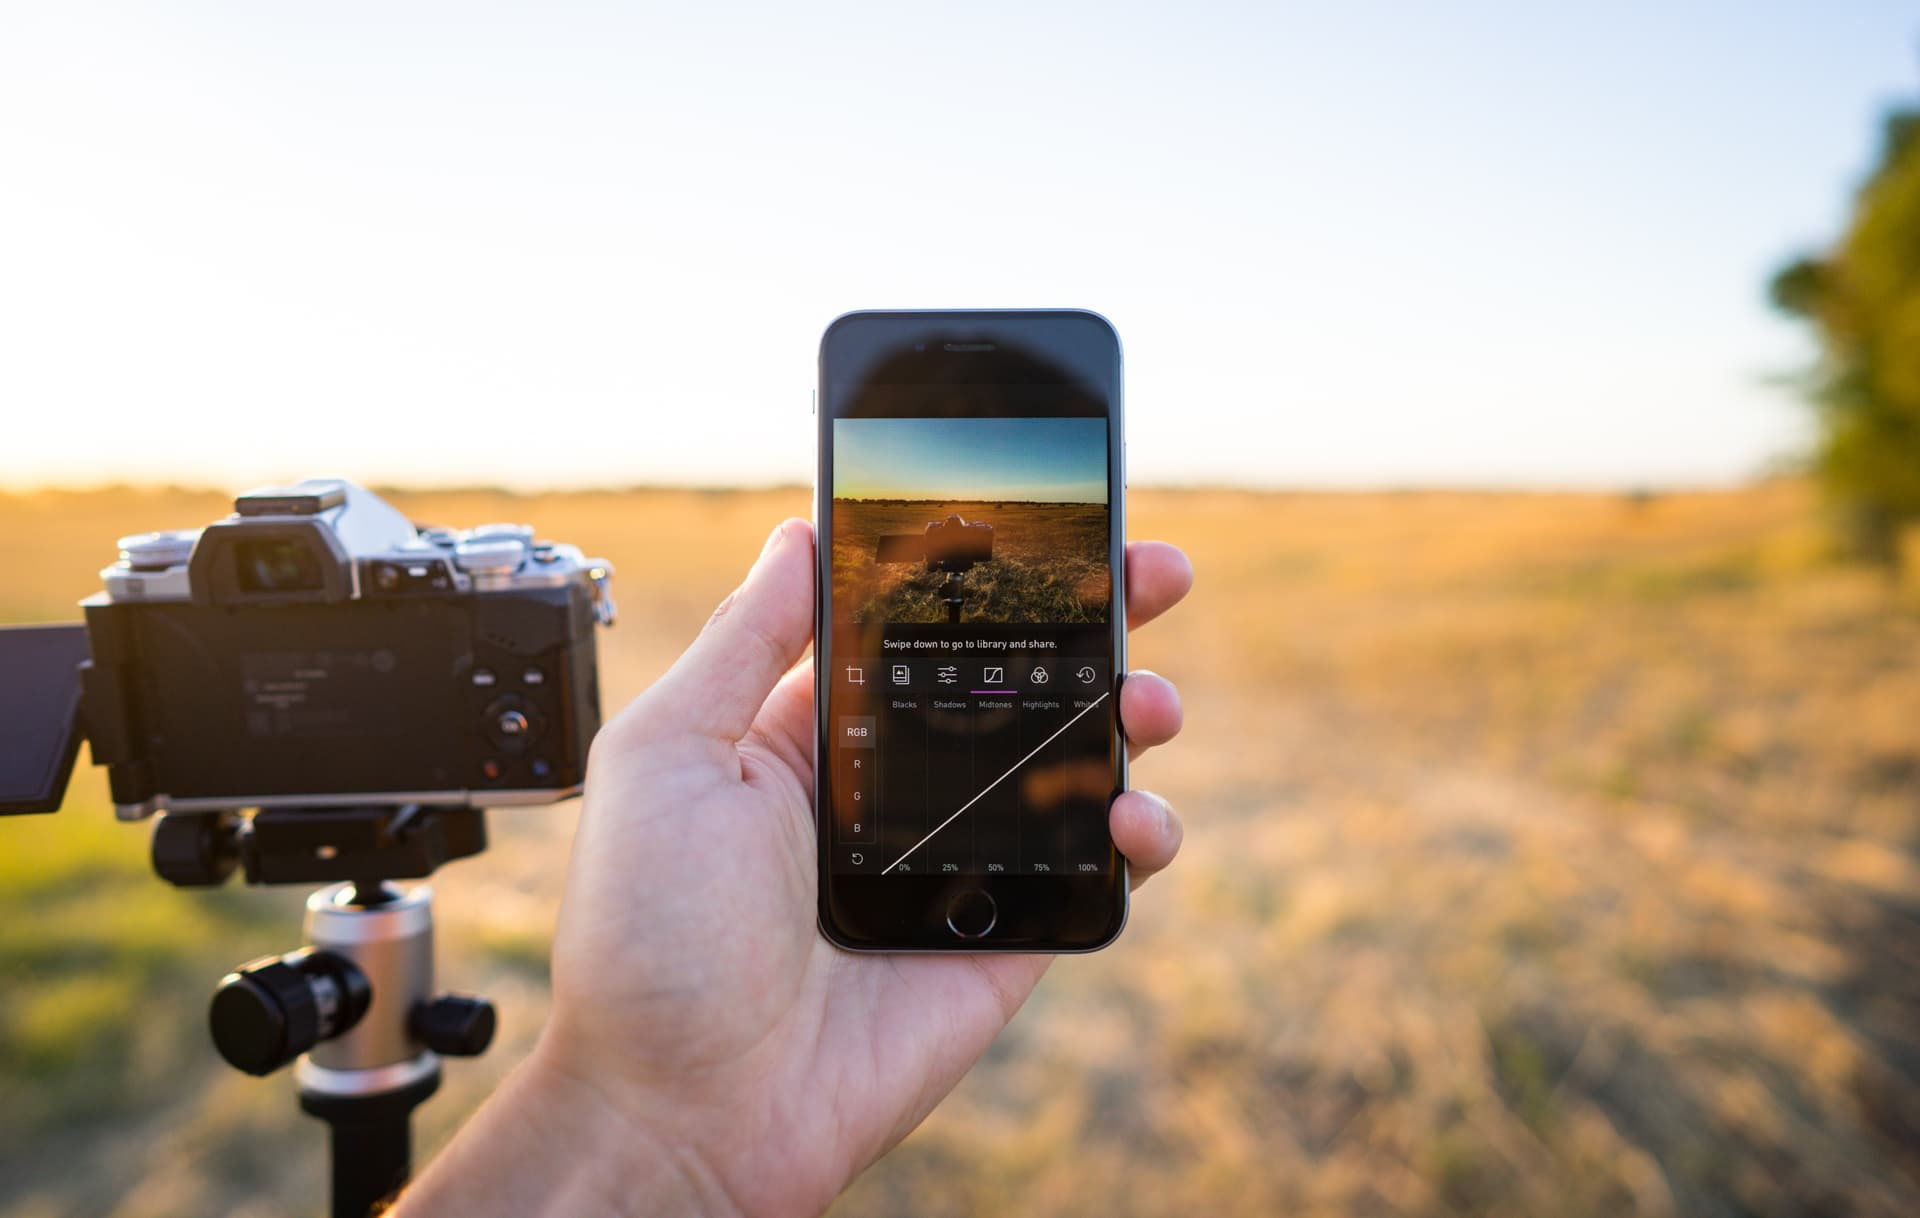 The best photo editing app for iPhone